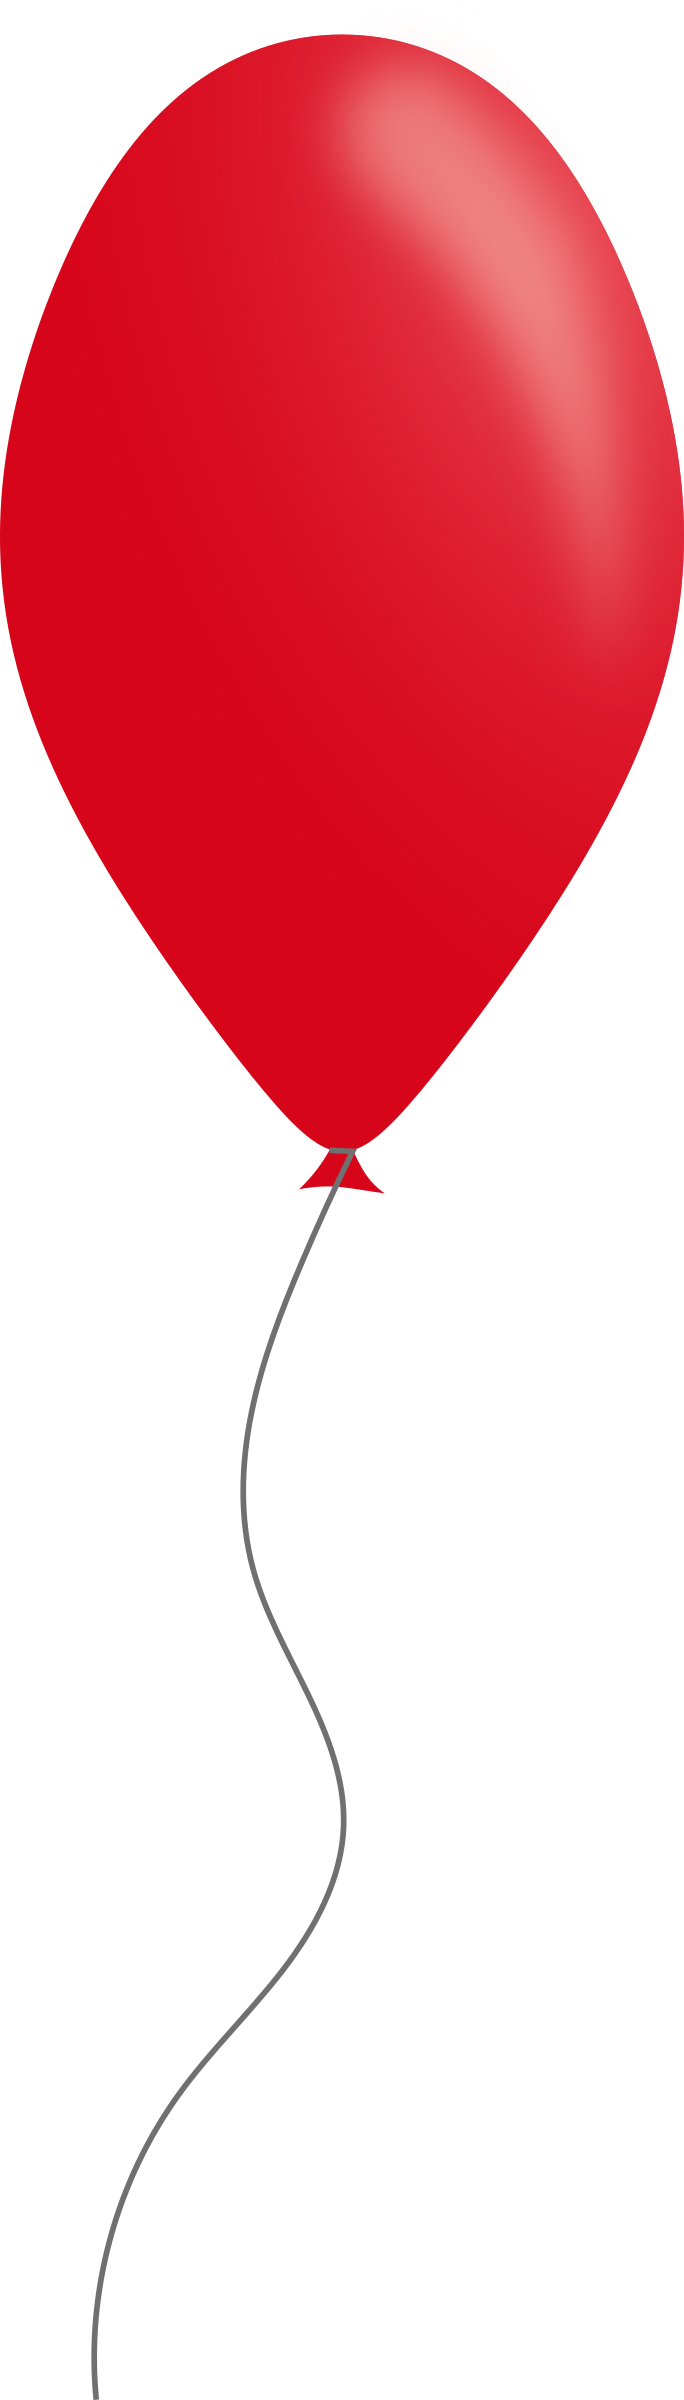 Red balloon by Caig